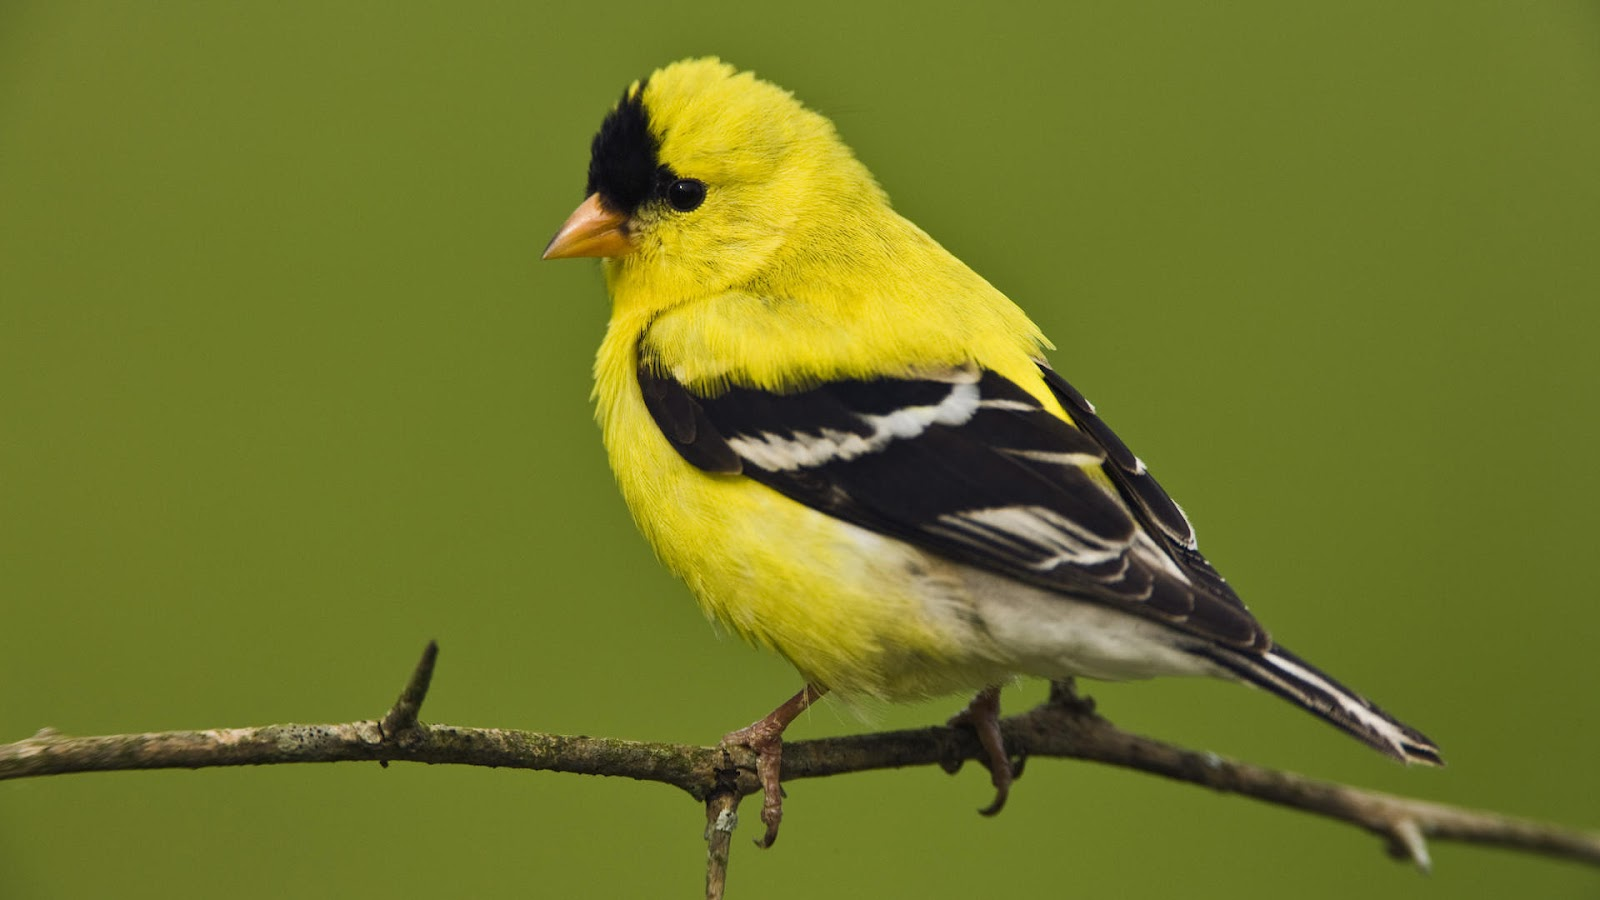 wallpaper of a yellow bird sitting on a branch HD bird wallpaper 1600x900